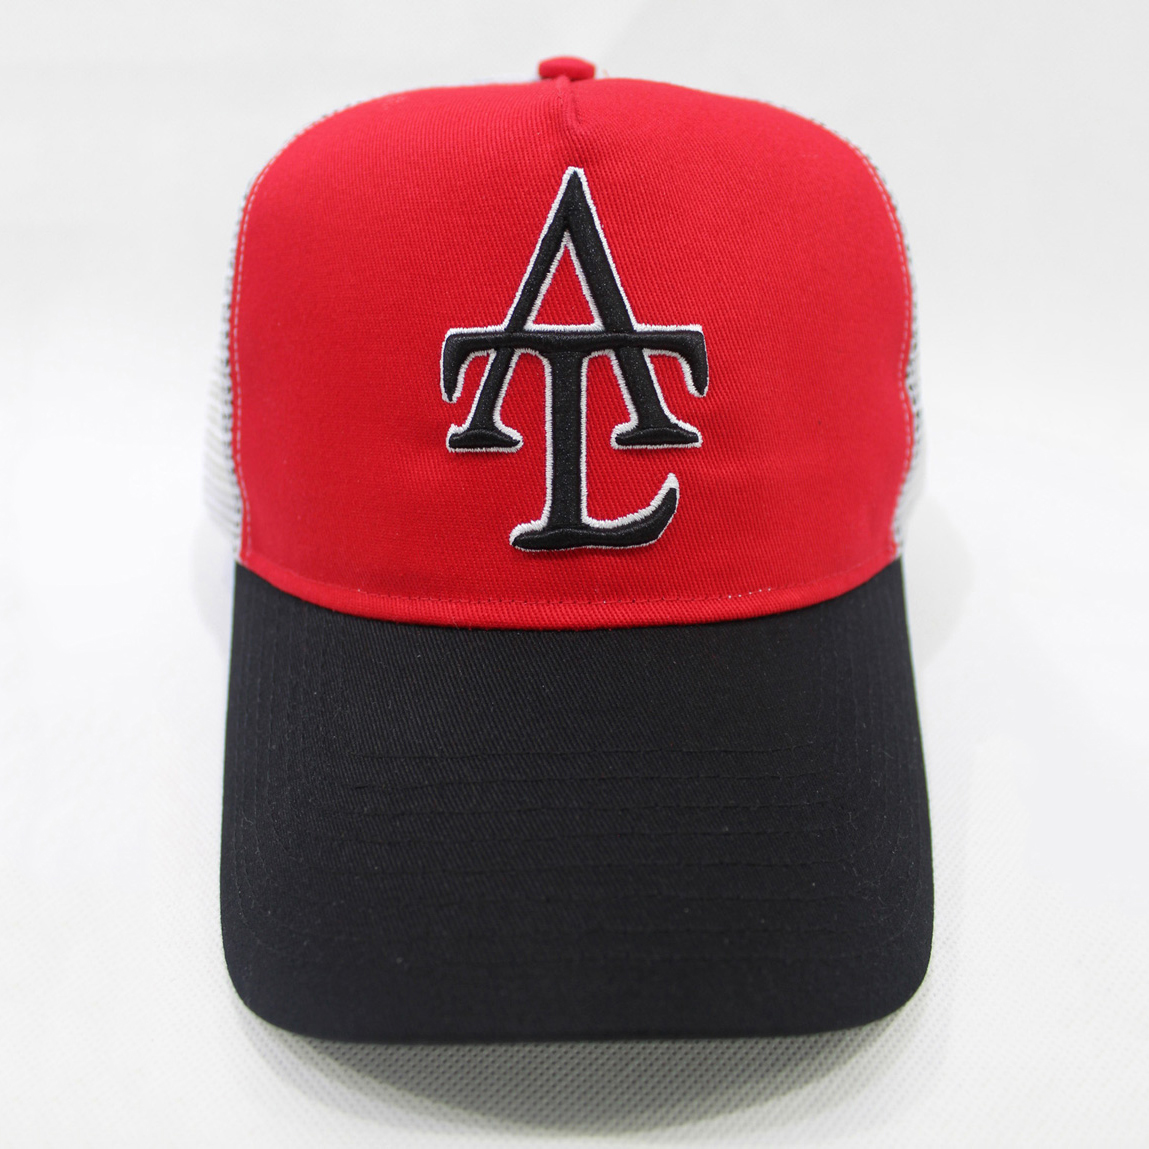 Custom Red-Black ATL Embroidered Trucker Hats,Dongguan Suntrends Hat Factory